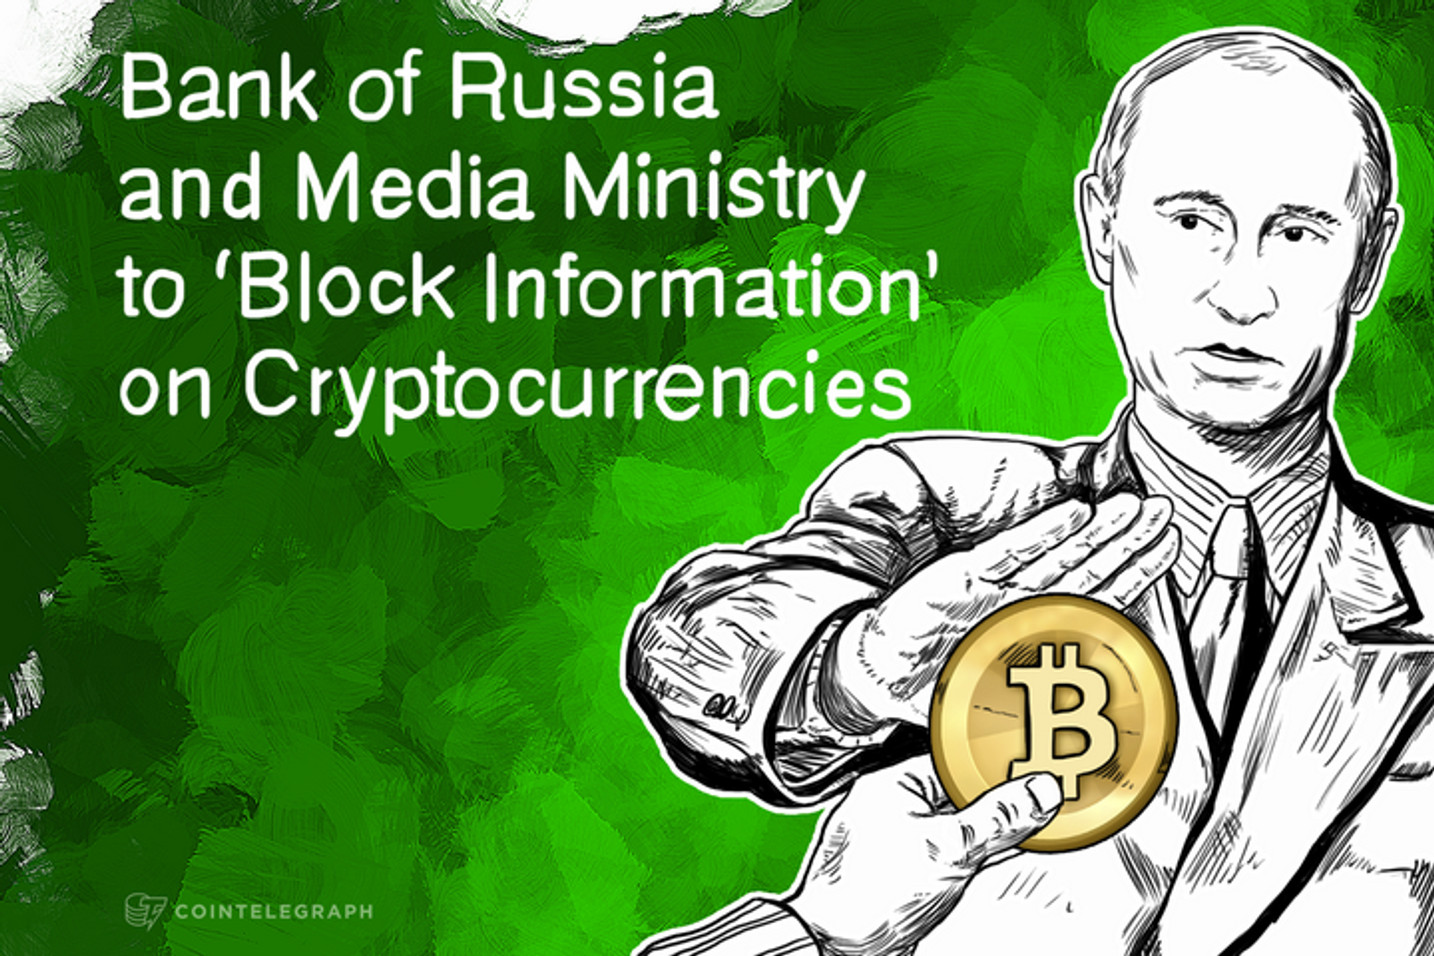 Bank of Russia and Media Ministry to 'Block Information' on Cryptocurrencies